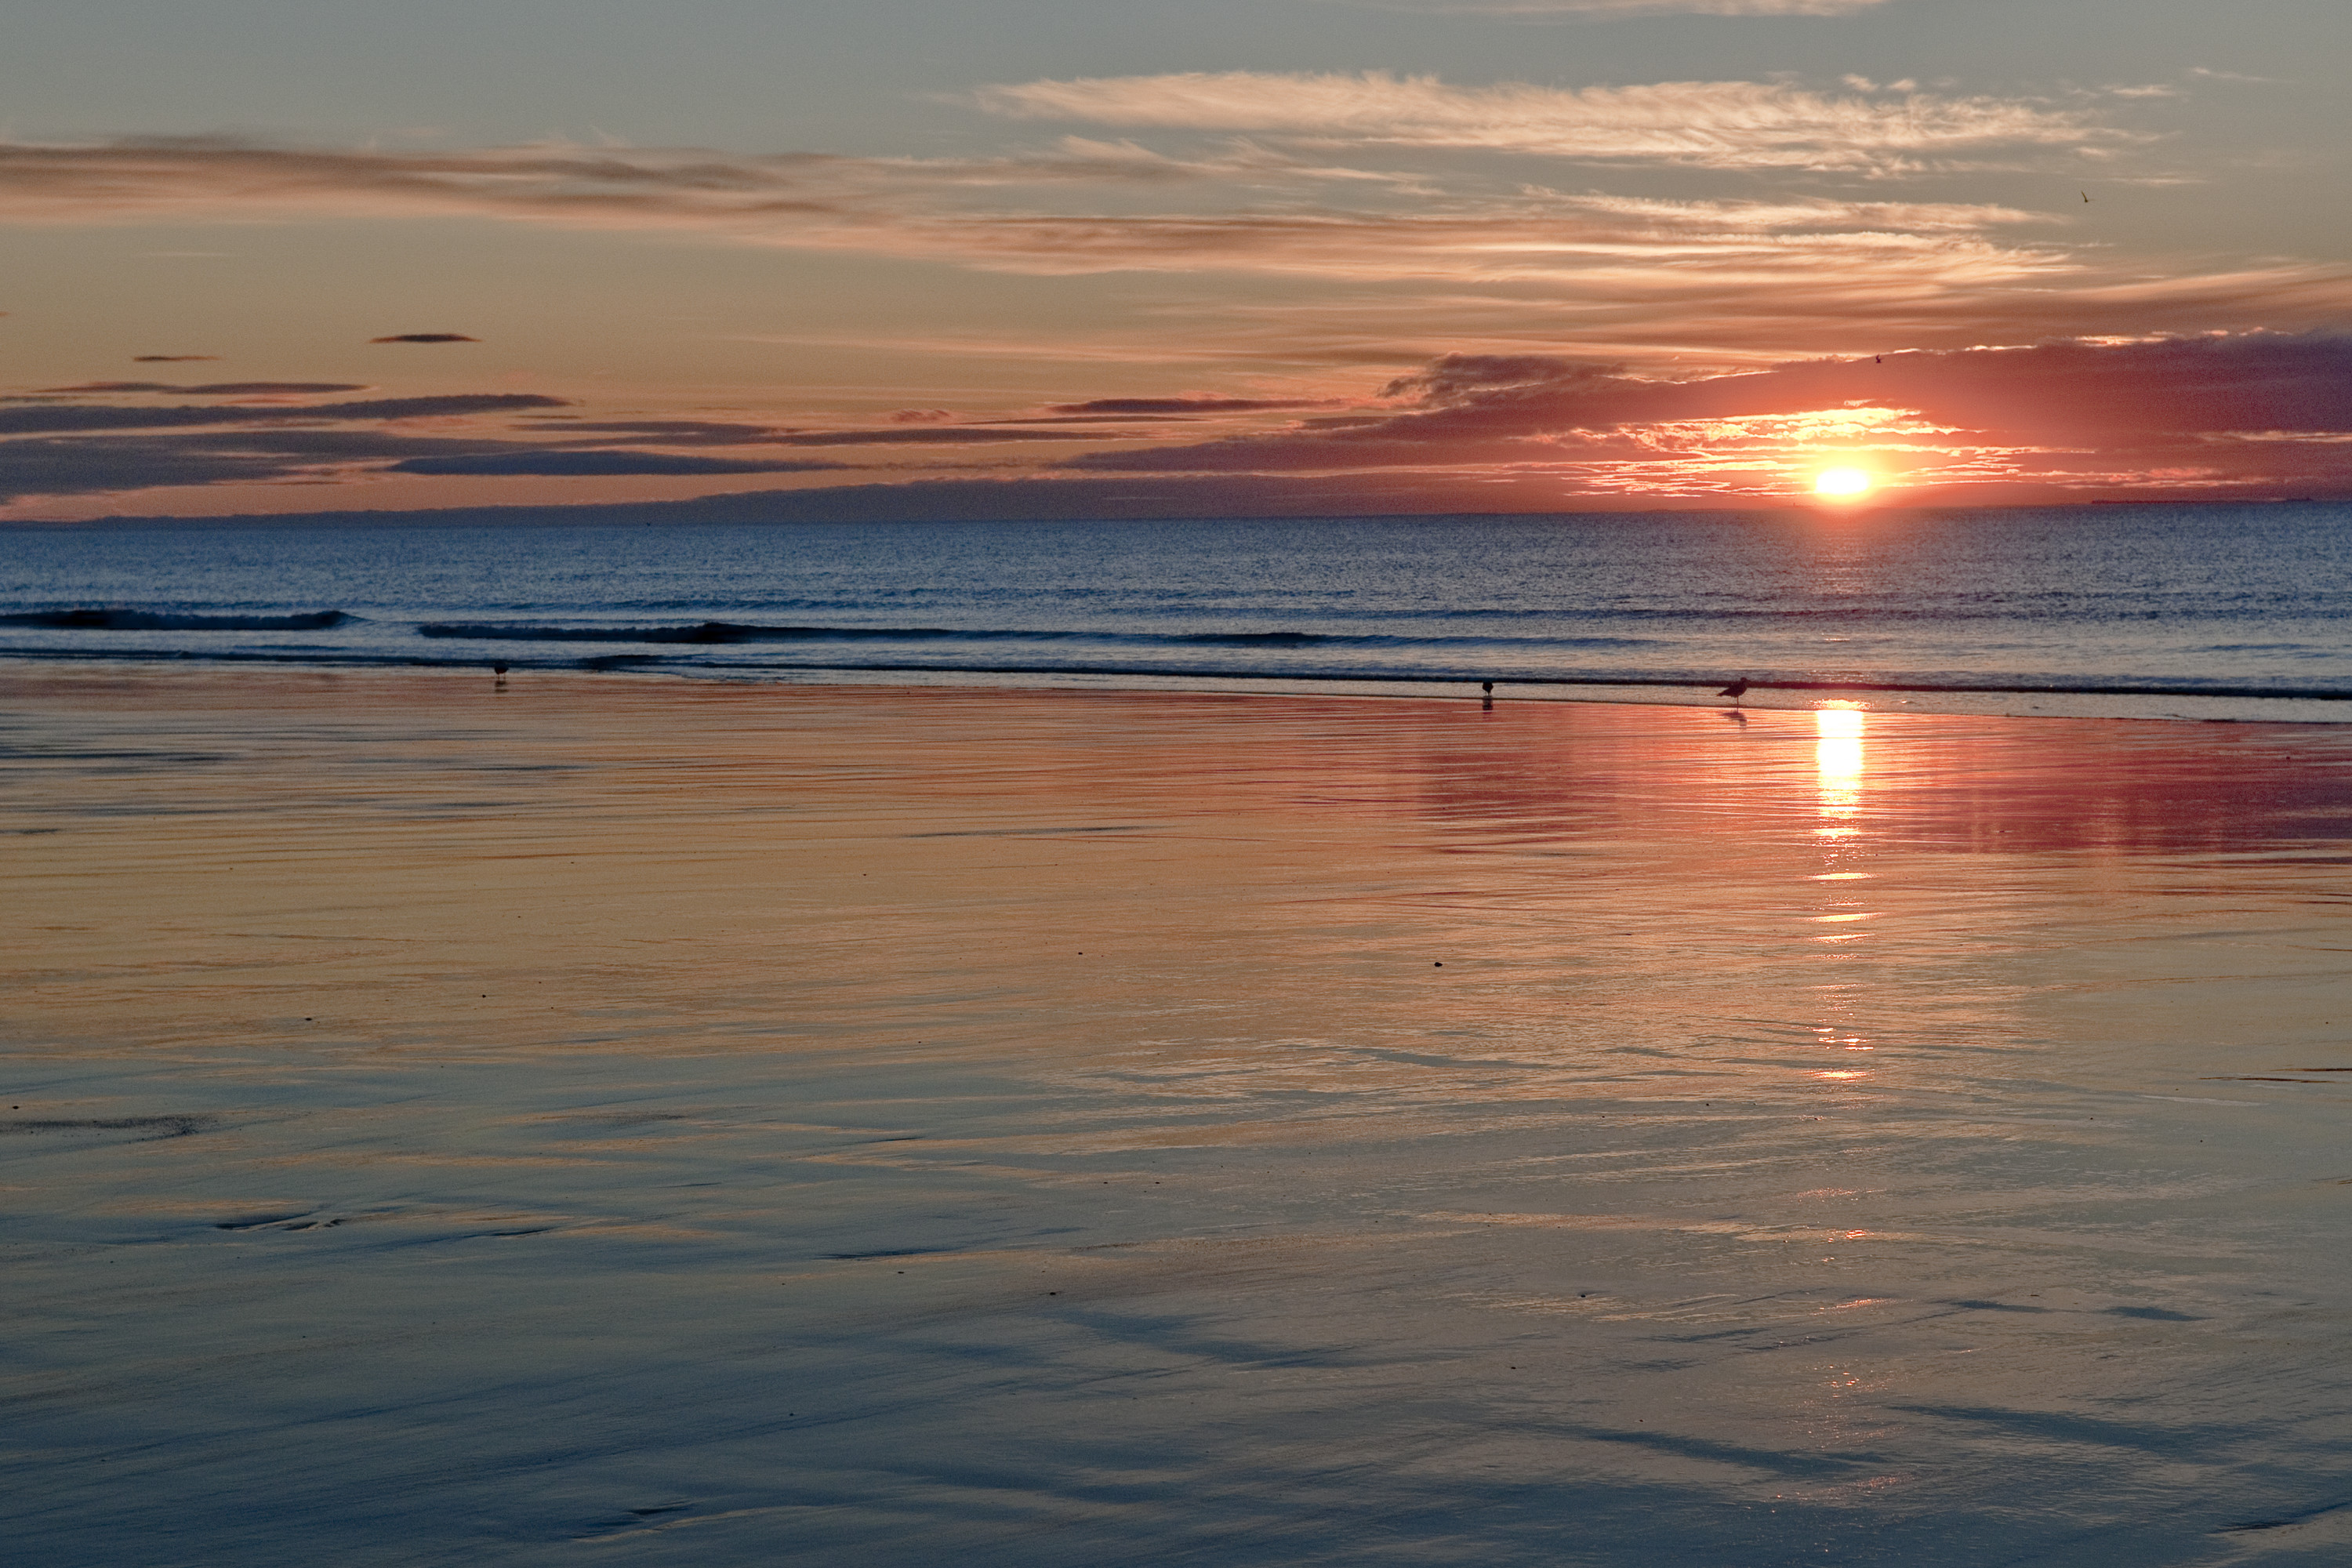 Sandy beach with sunrise in orange and yellow sky colors.